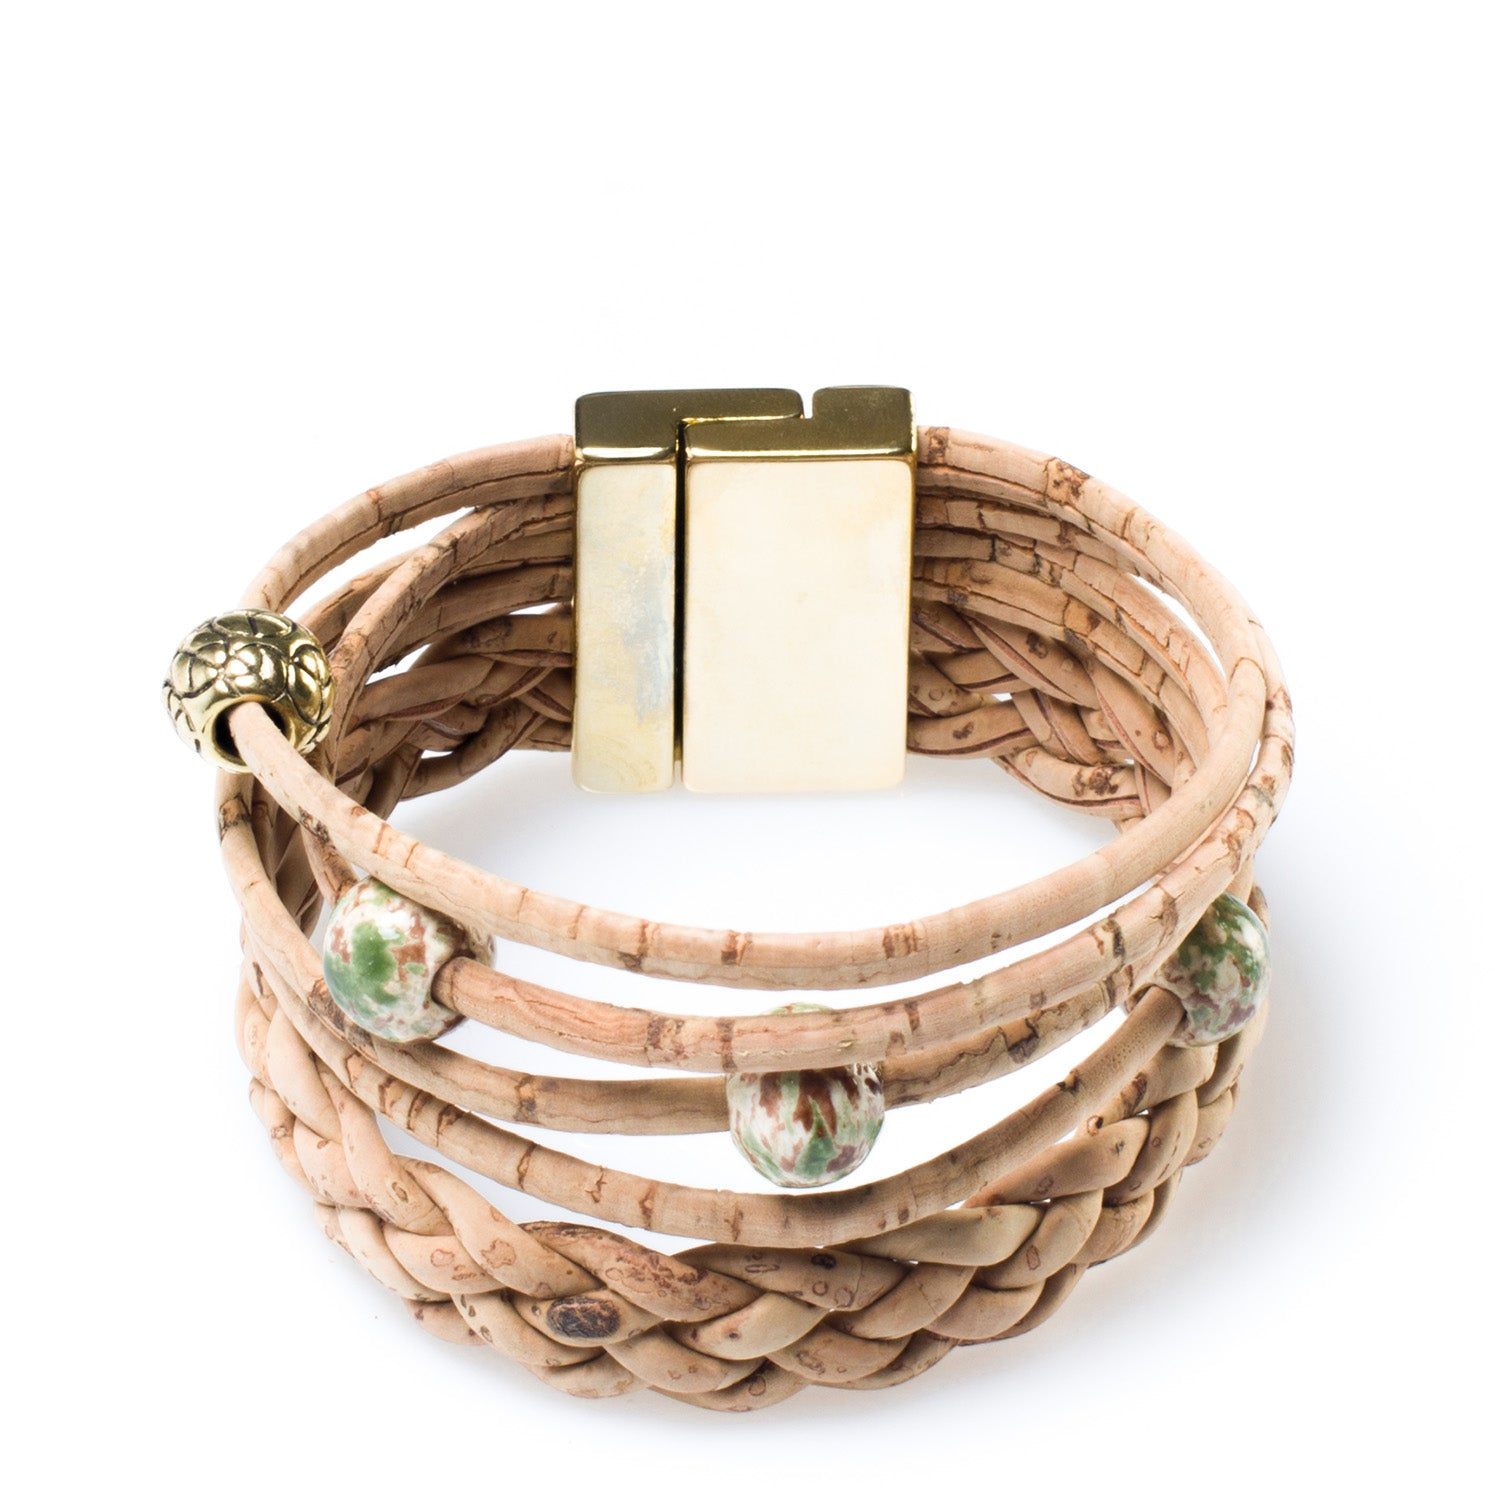 Natural Braided Cork Bracelet | HowCork - The Cork Marketplace